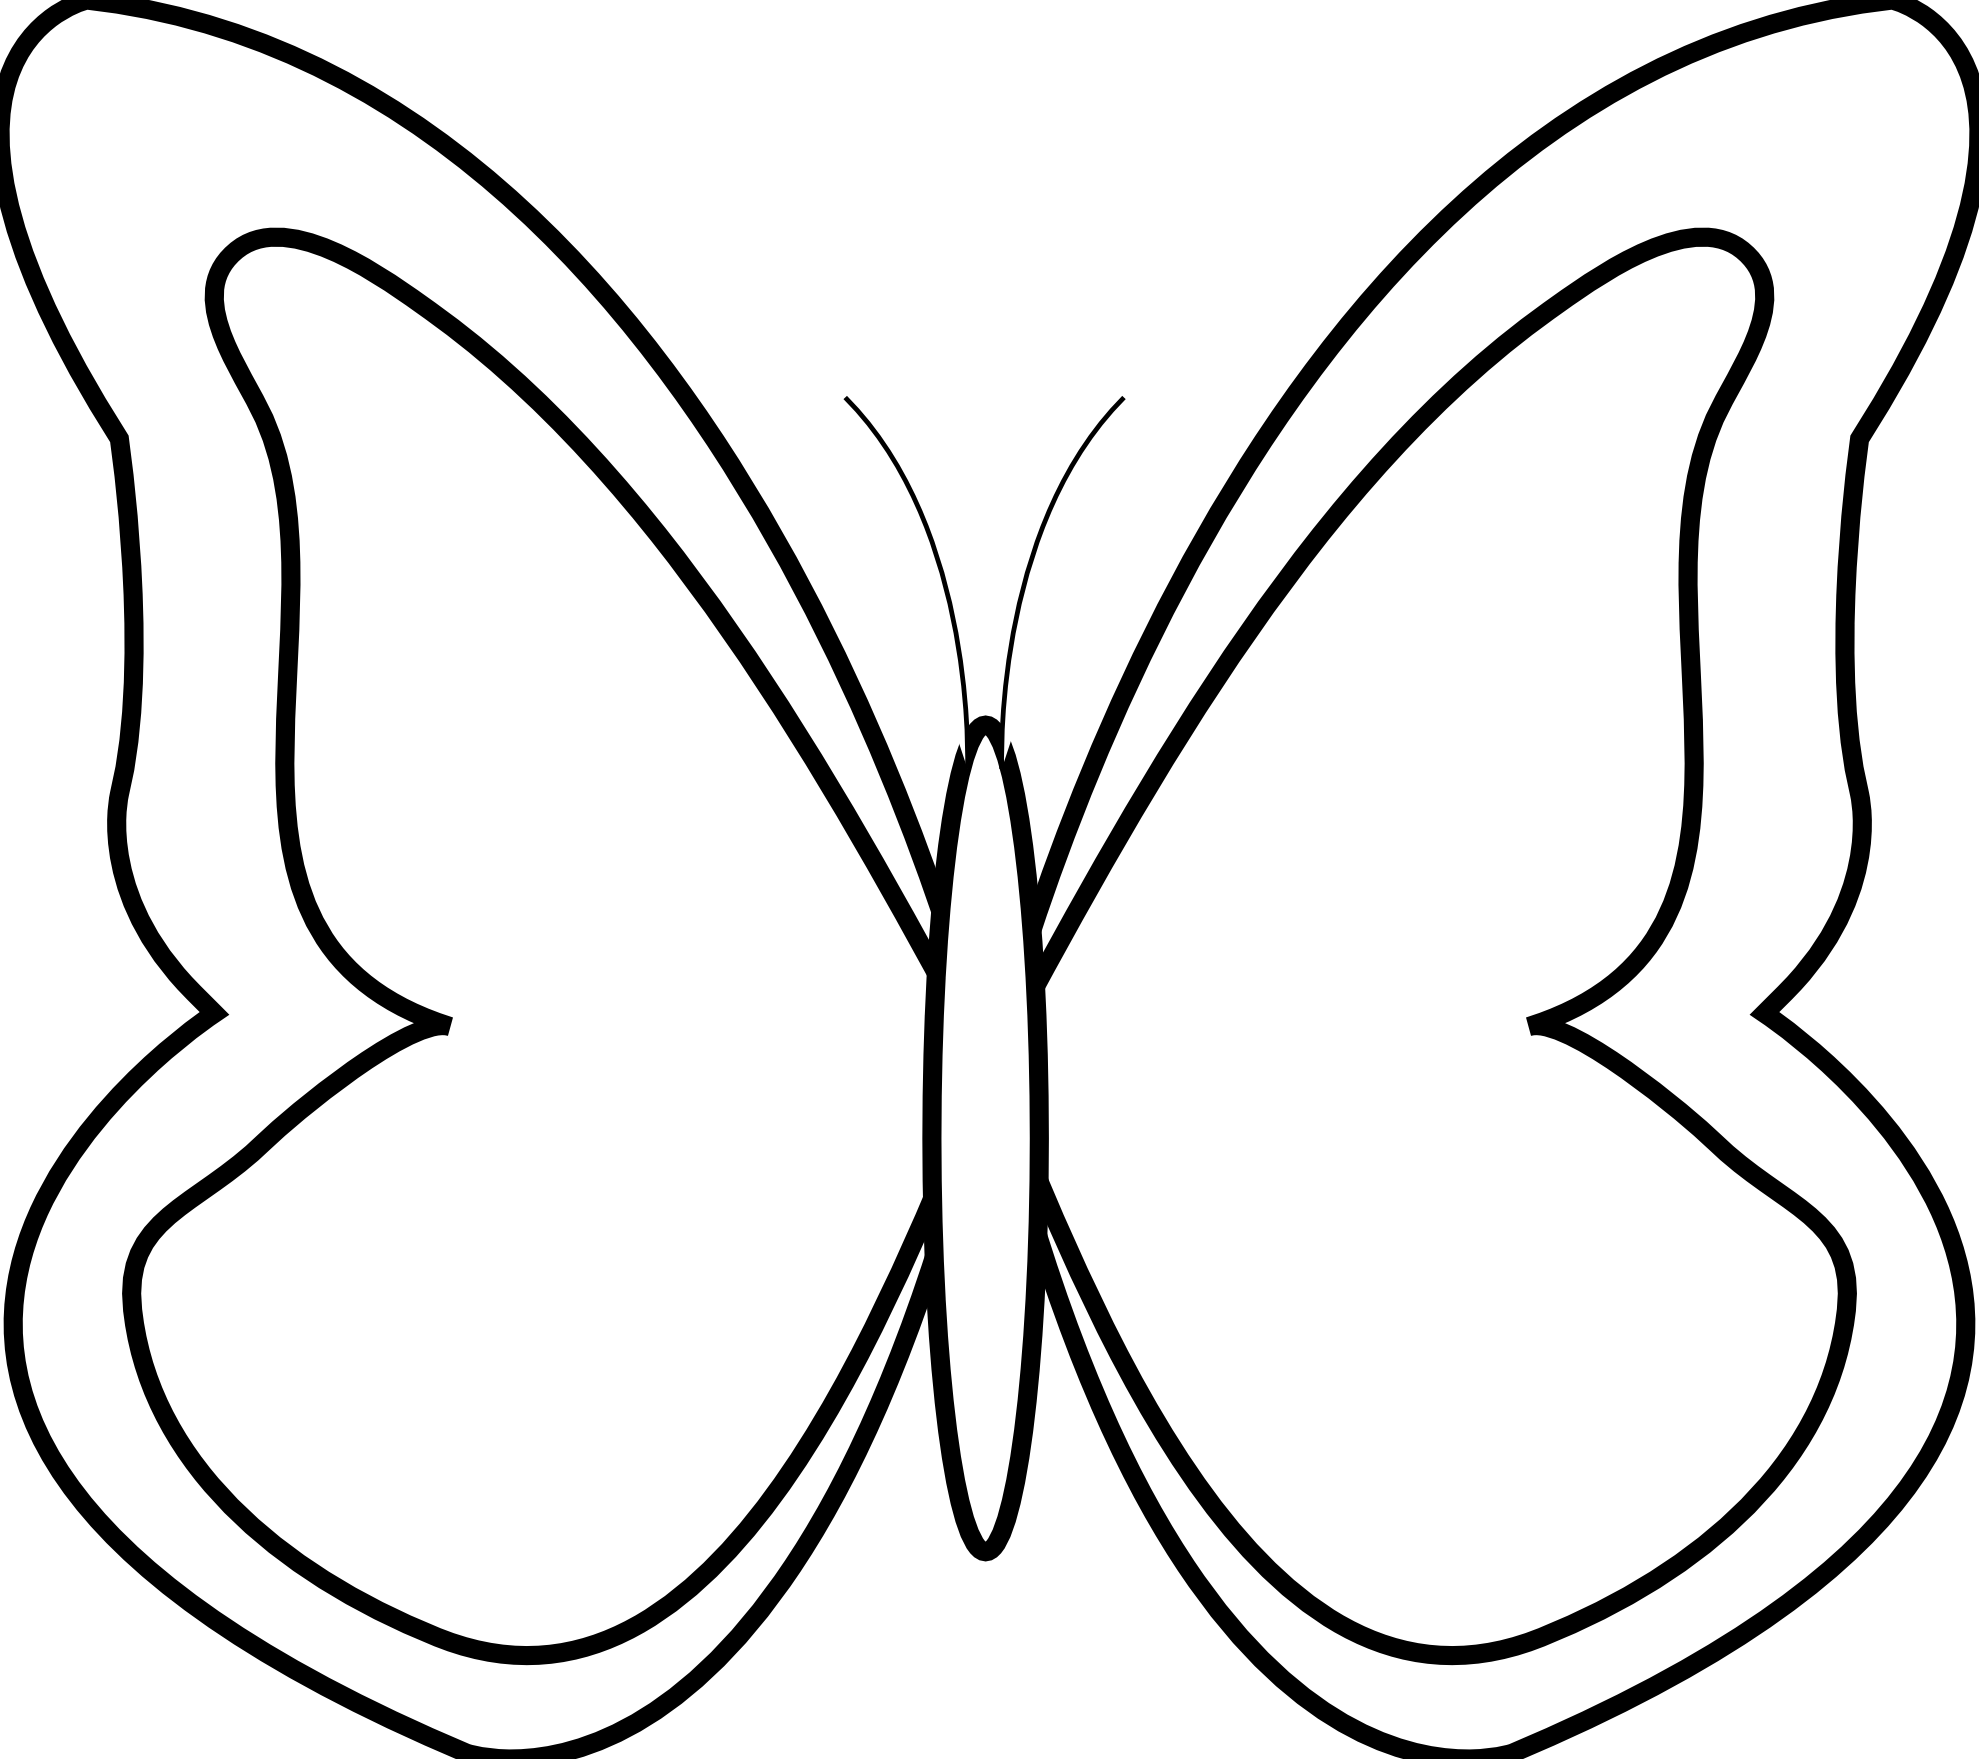 Flower black and white butterfly. Clip art clipart best